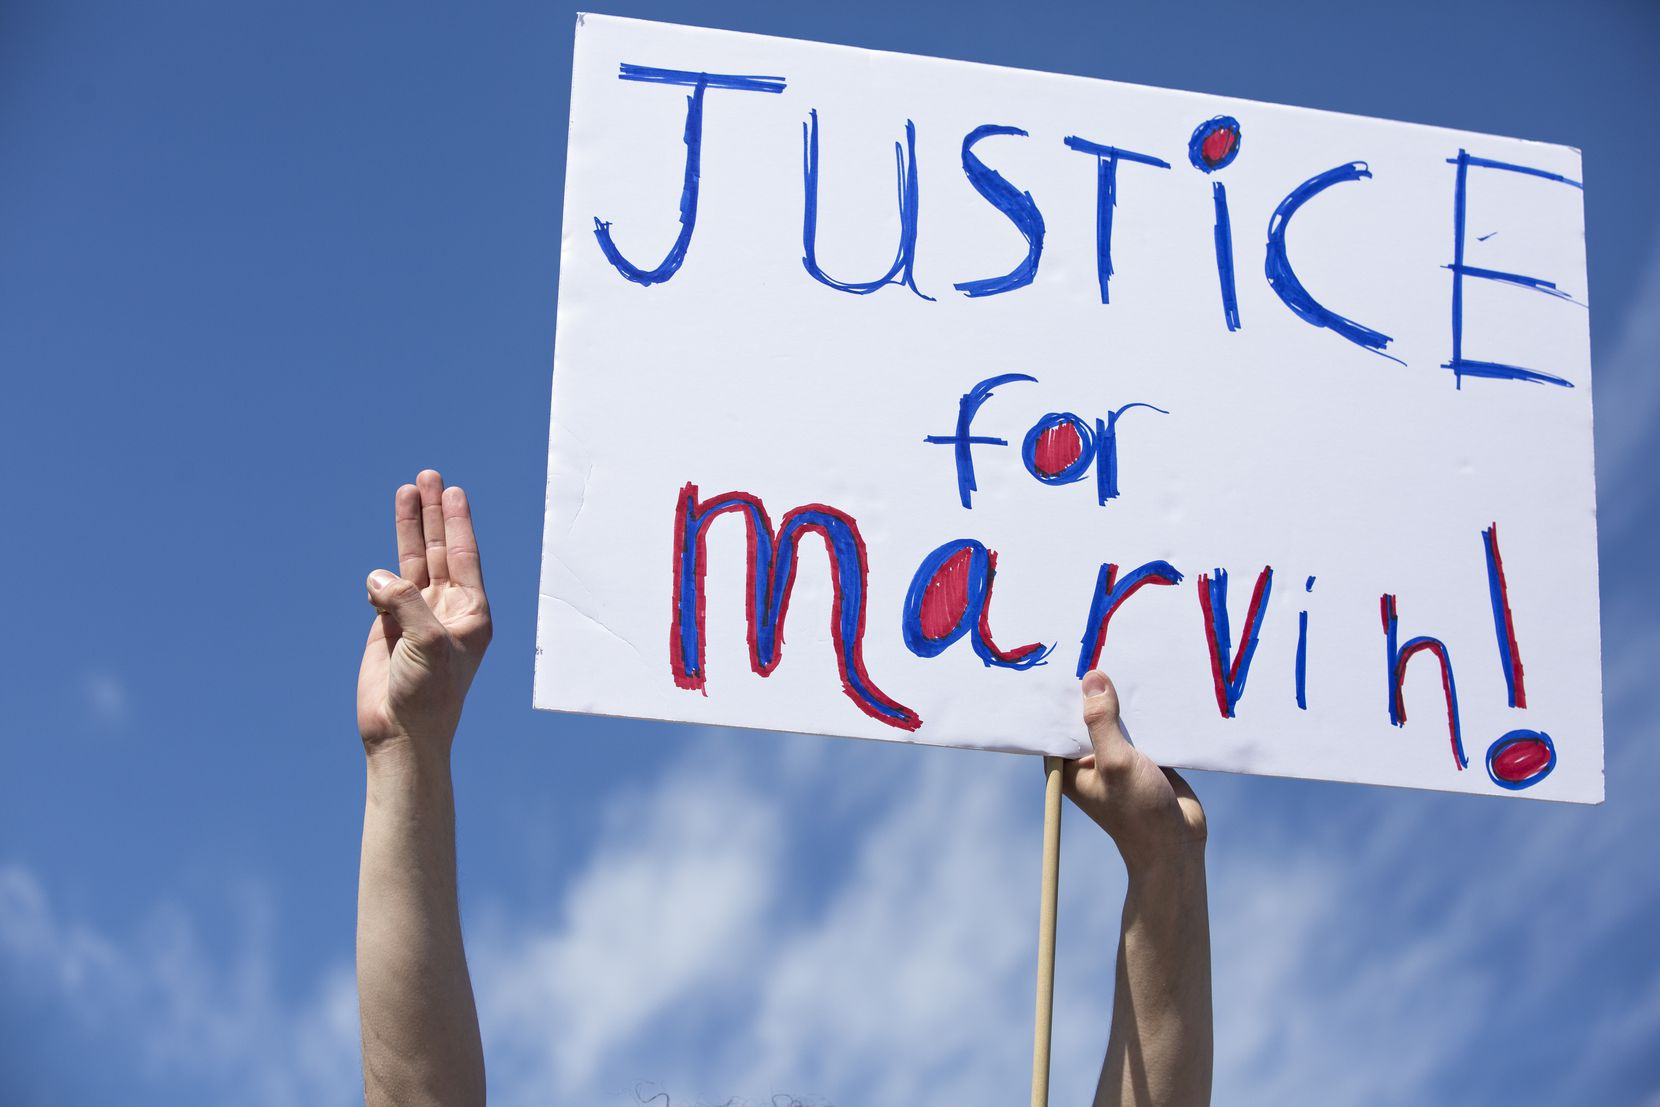 People marched through the Allen Premium Outlets on March 21, demanding justice for Marvin D. Scott III.